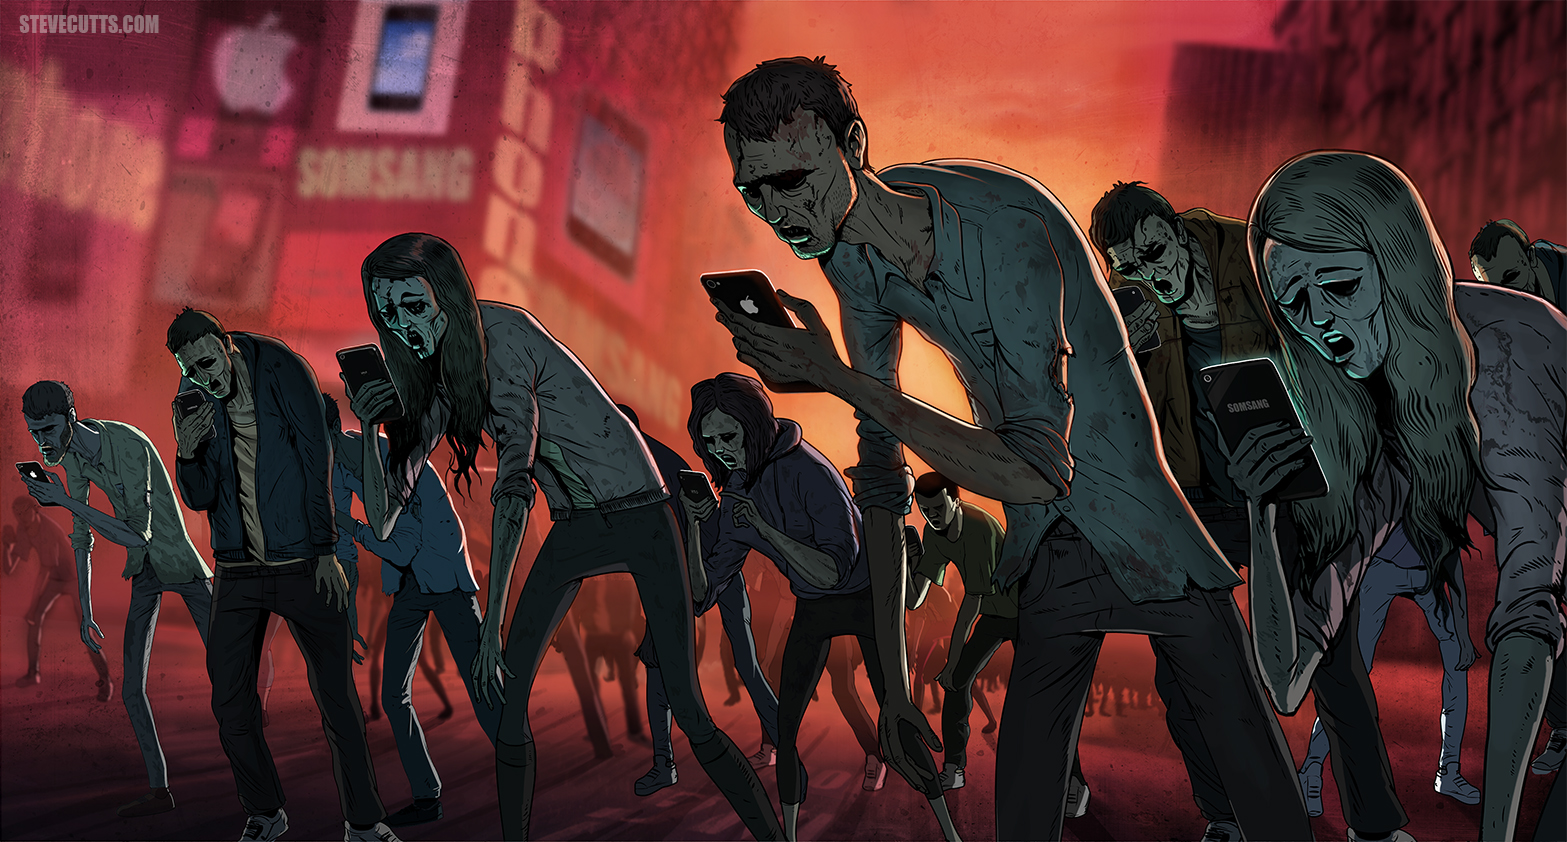 Why be afraid of zombies? Social media already made you one! Find out how social media can turn your whole life upside down.